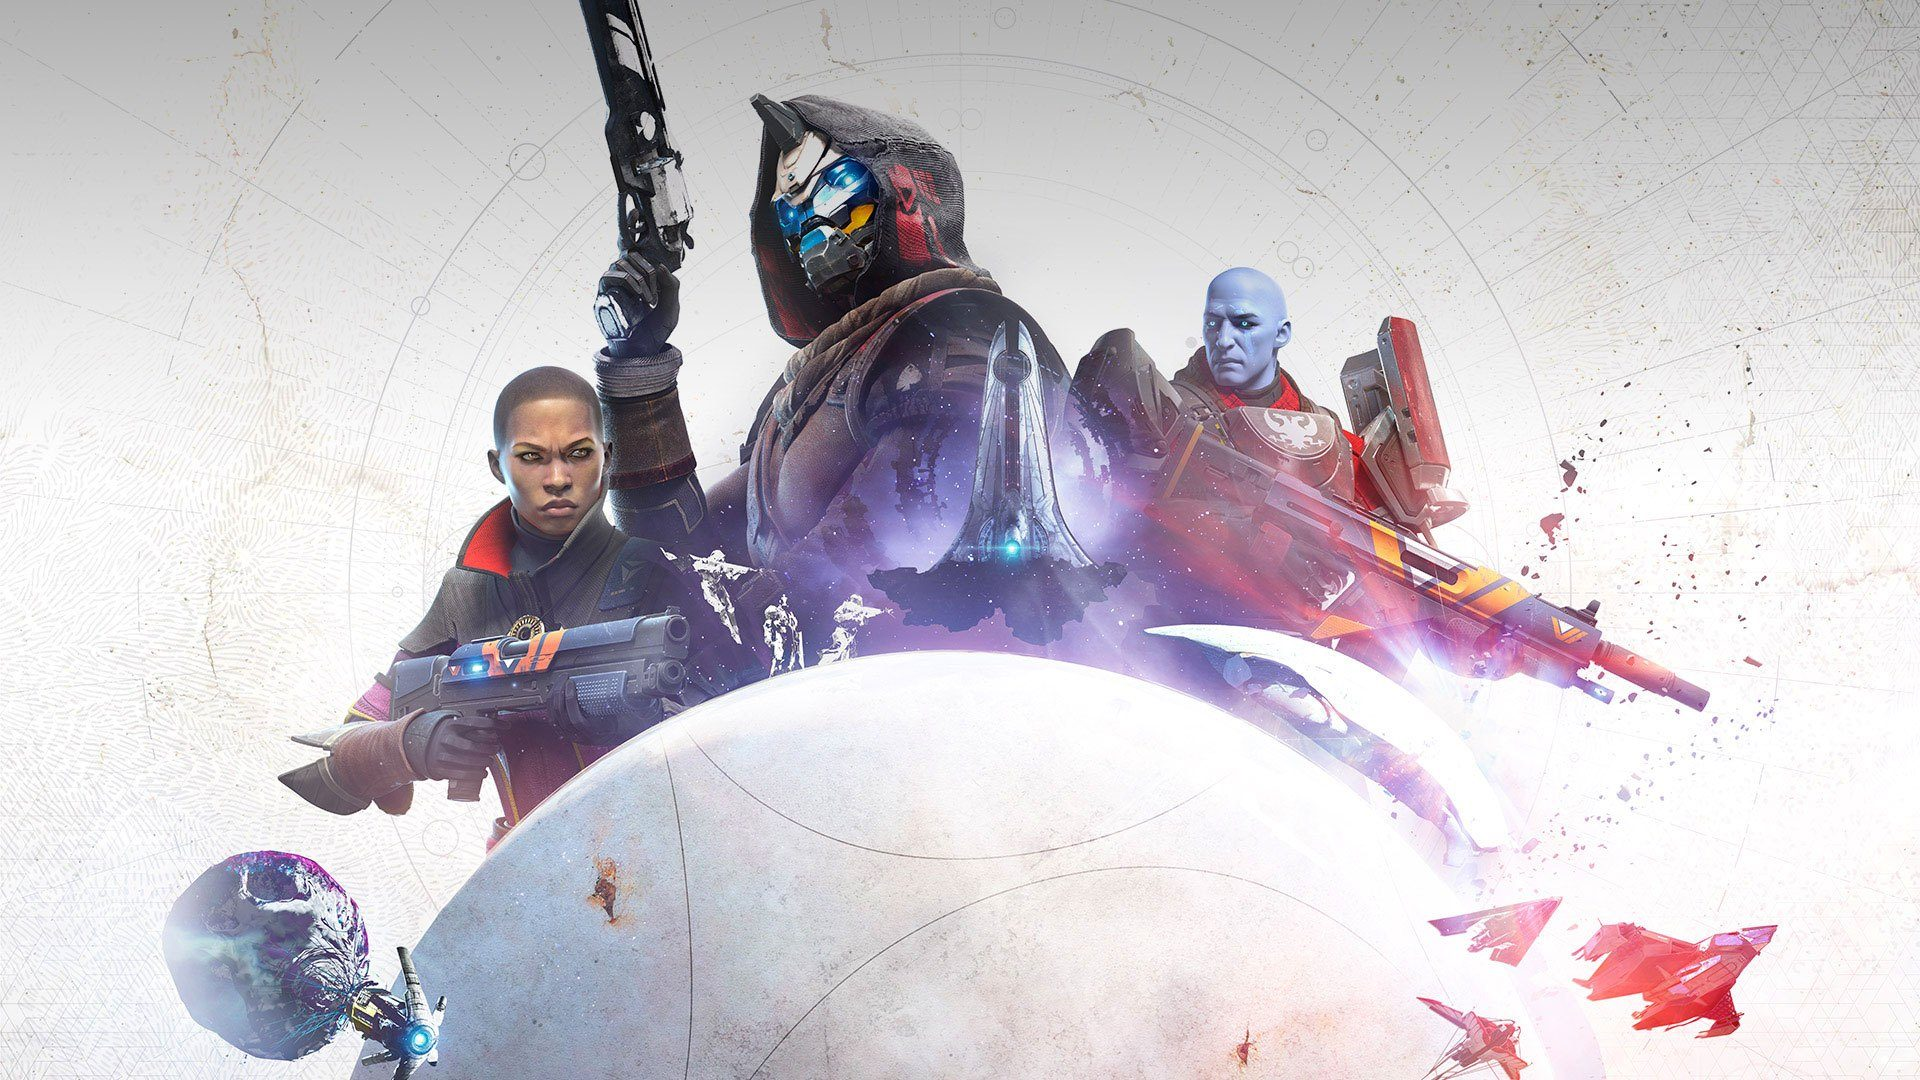 Destiny 2 New Light release date